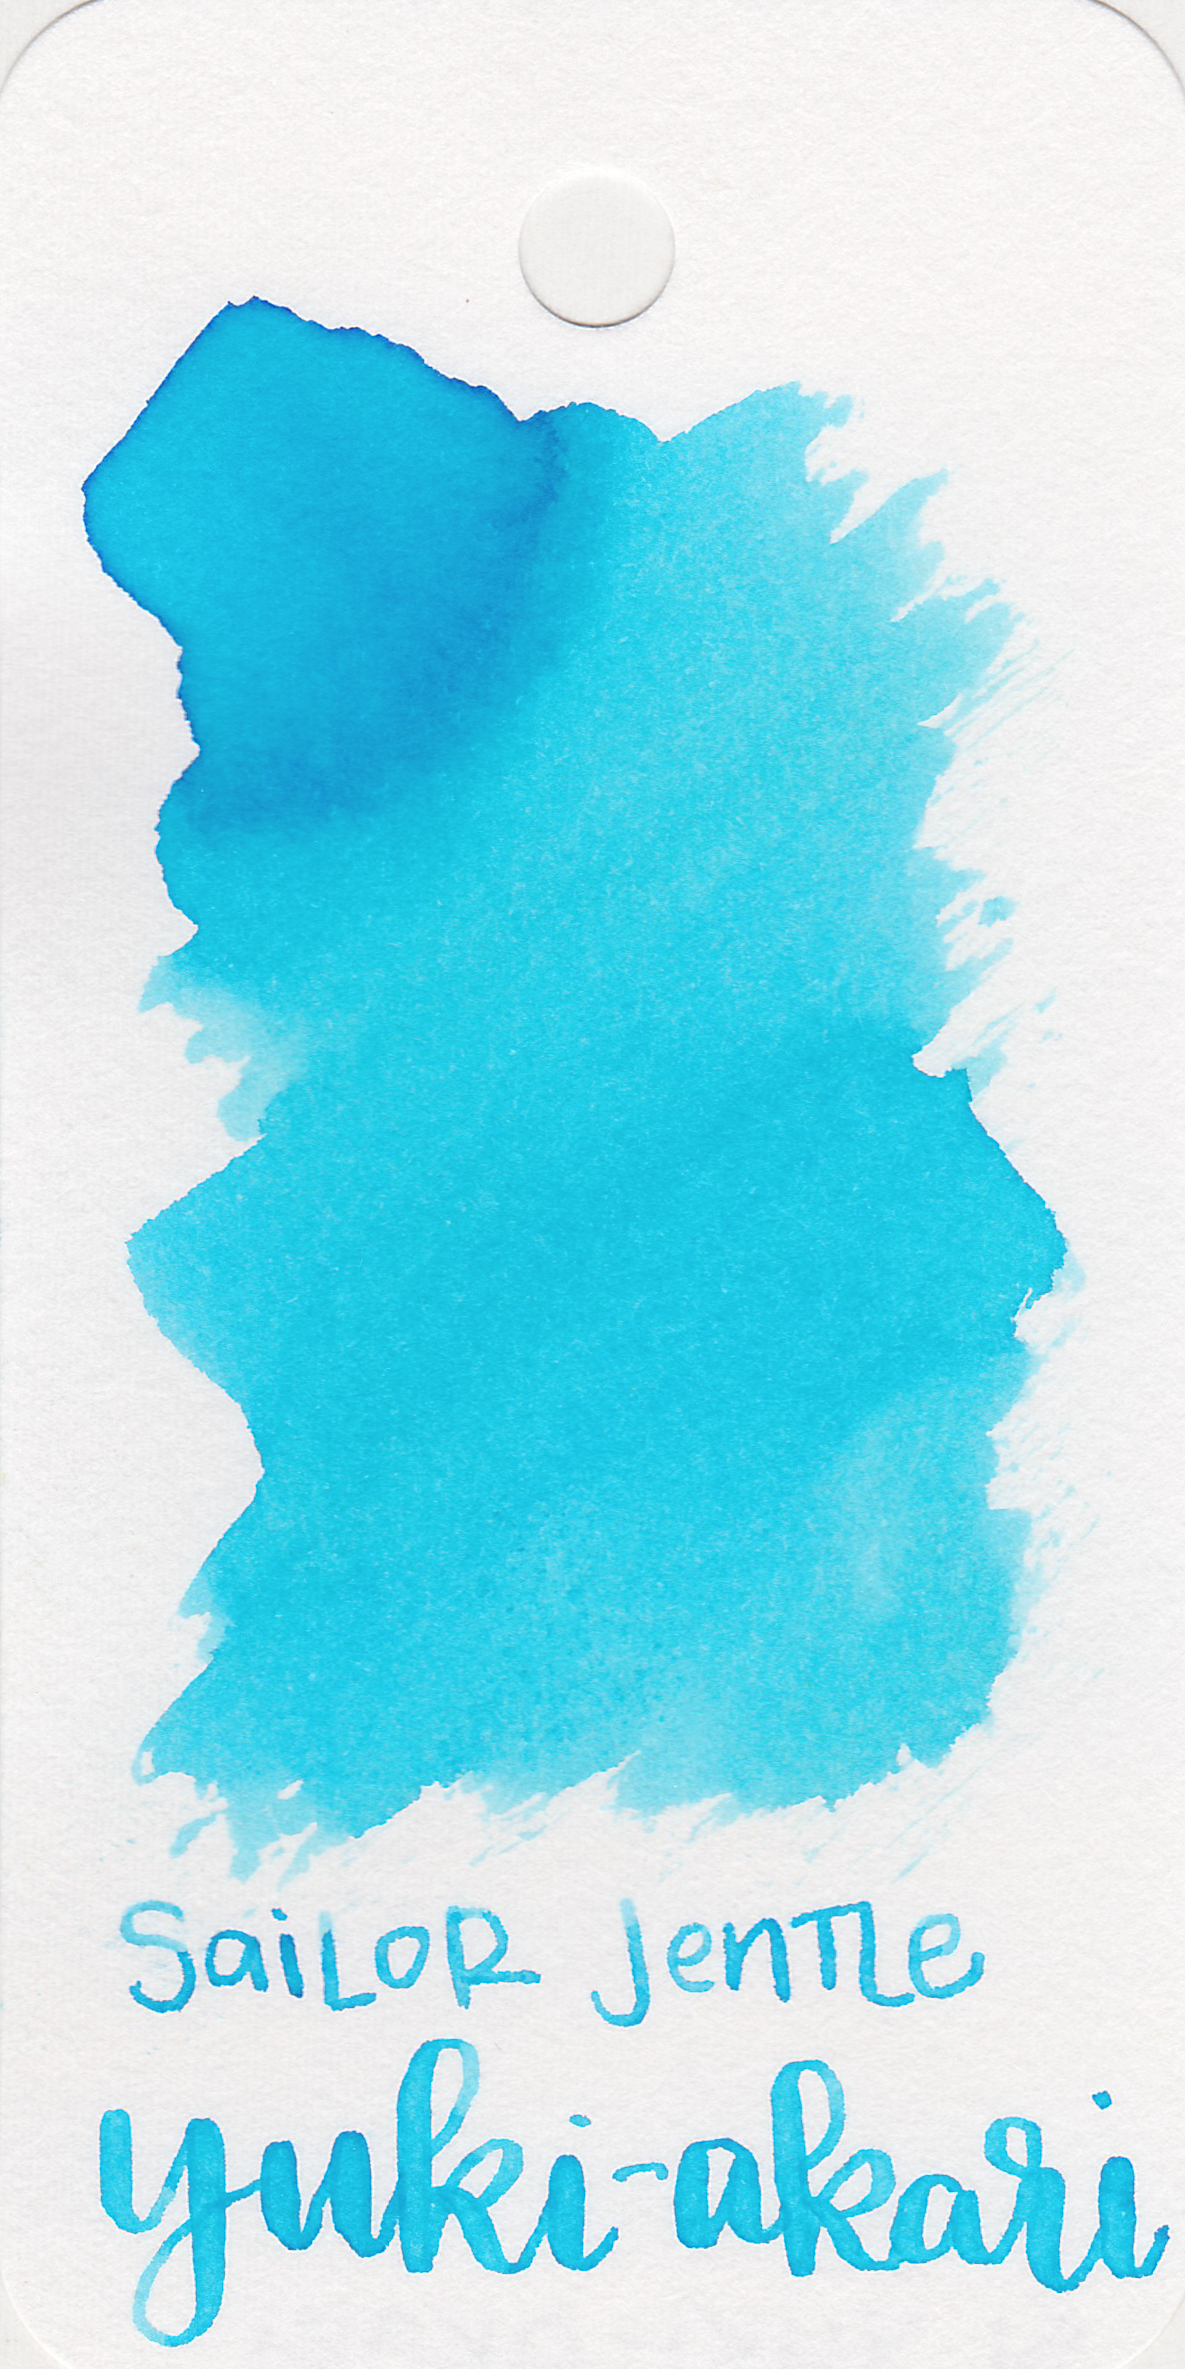 The color: - Yuki-akari is a light, bright blue.